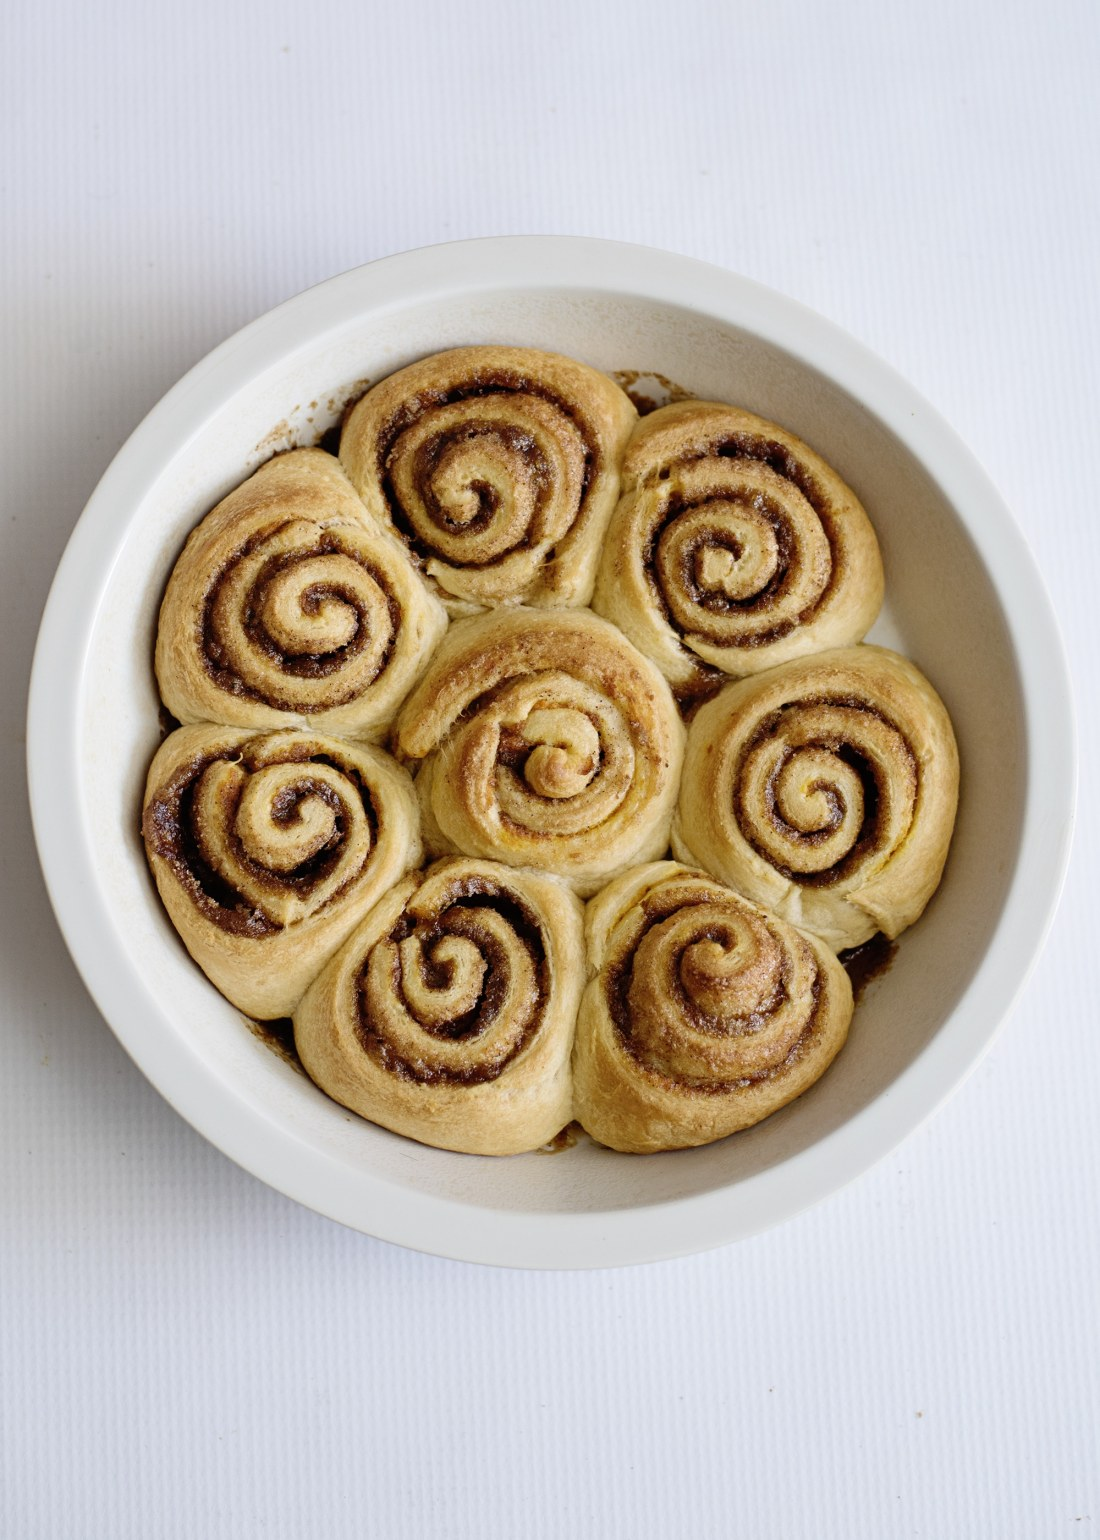 Pumpkin Spice Cinnamon Rolls Baked In Pan. Fill your home with the delicious smell of these easy to make Pumpkin Spice Cinnamon Rolls.